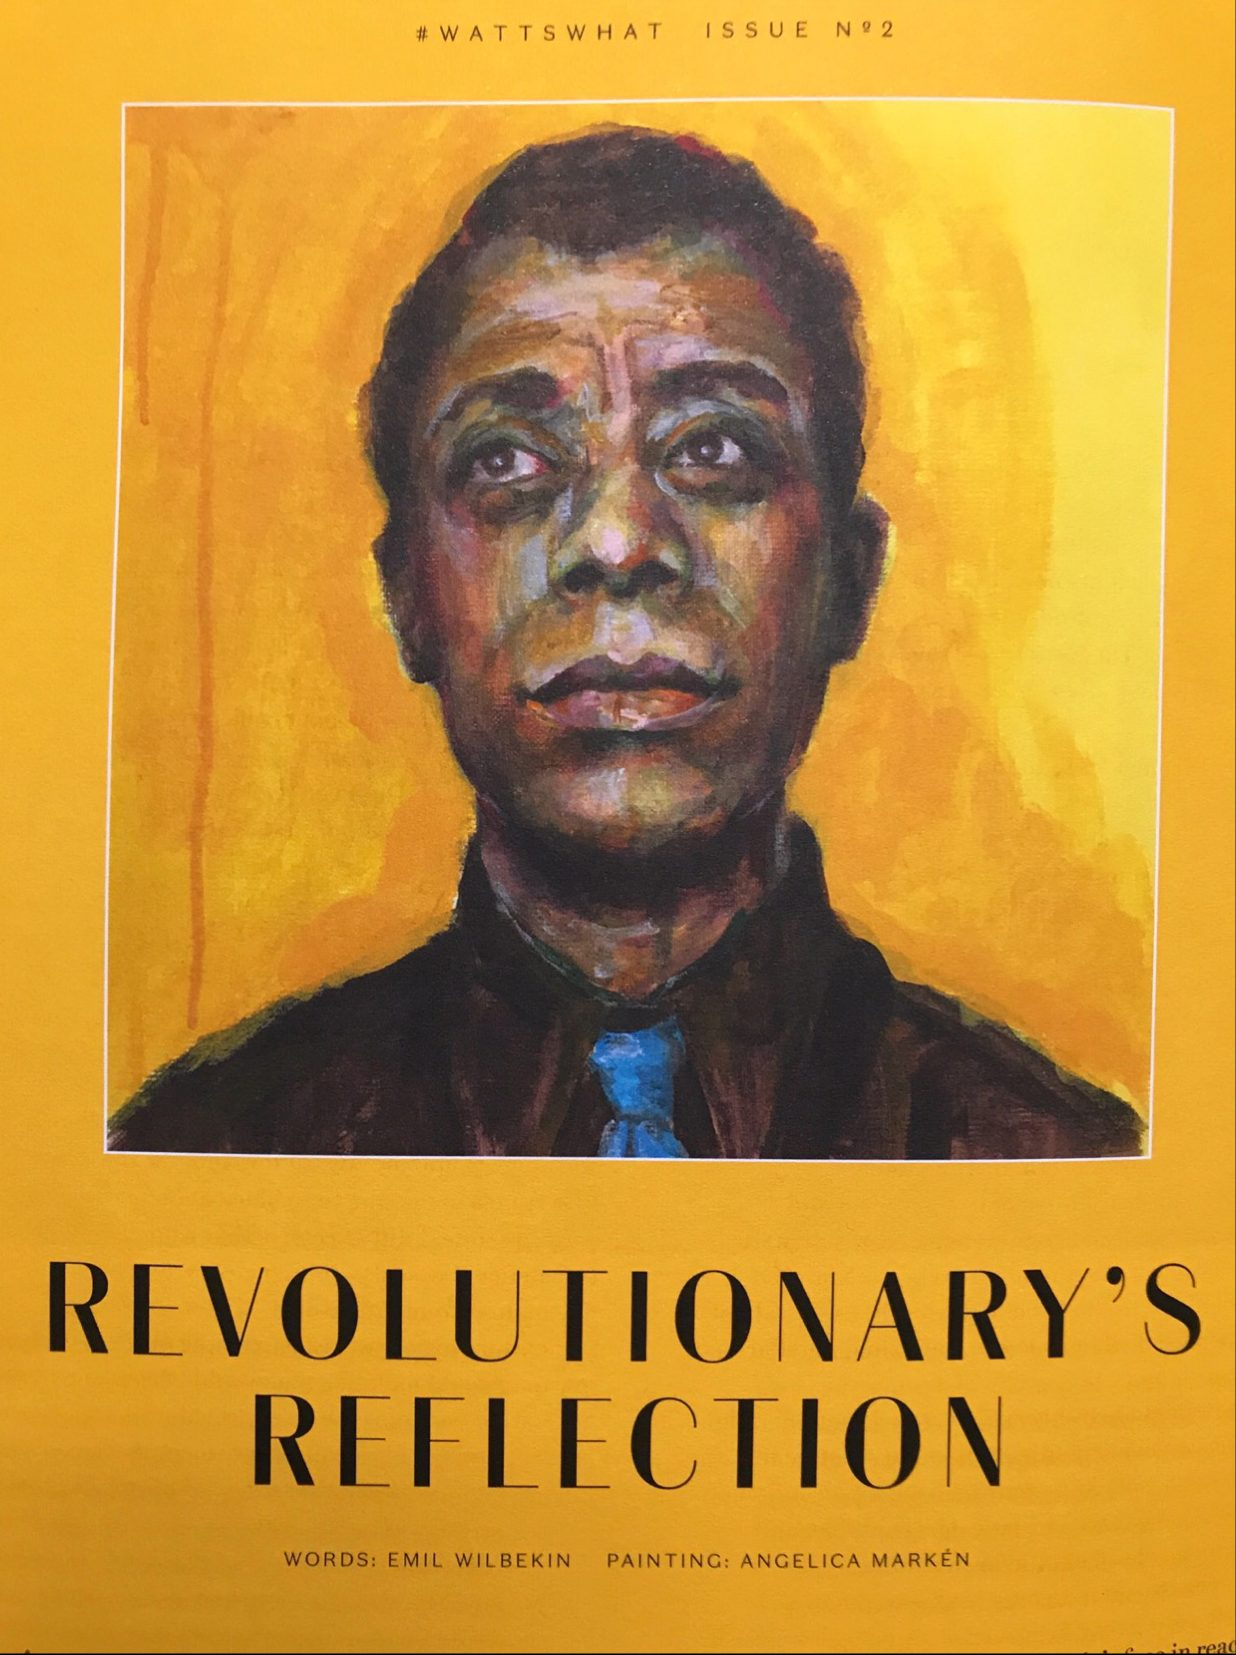 James Baldwin artist Angelica Markén 2018